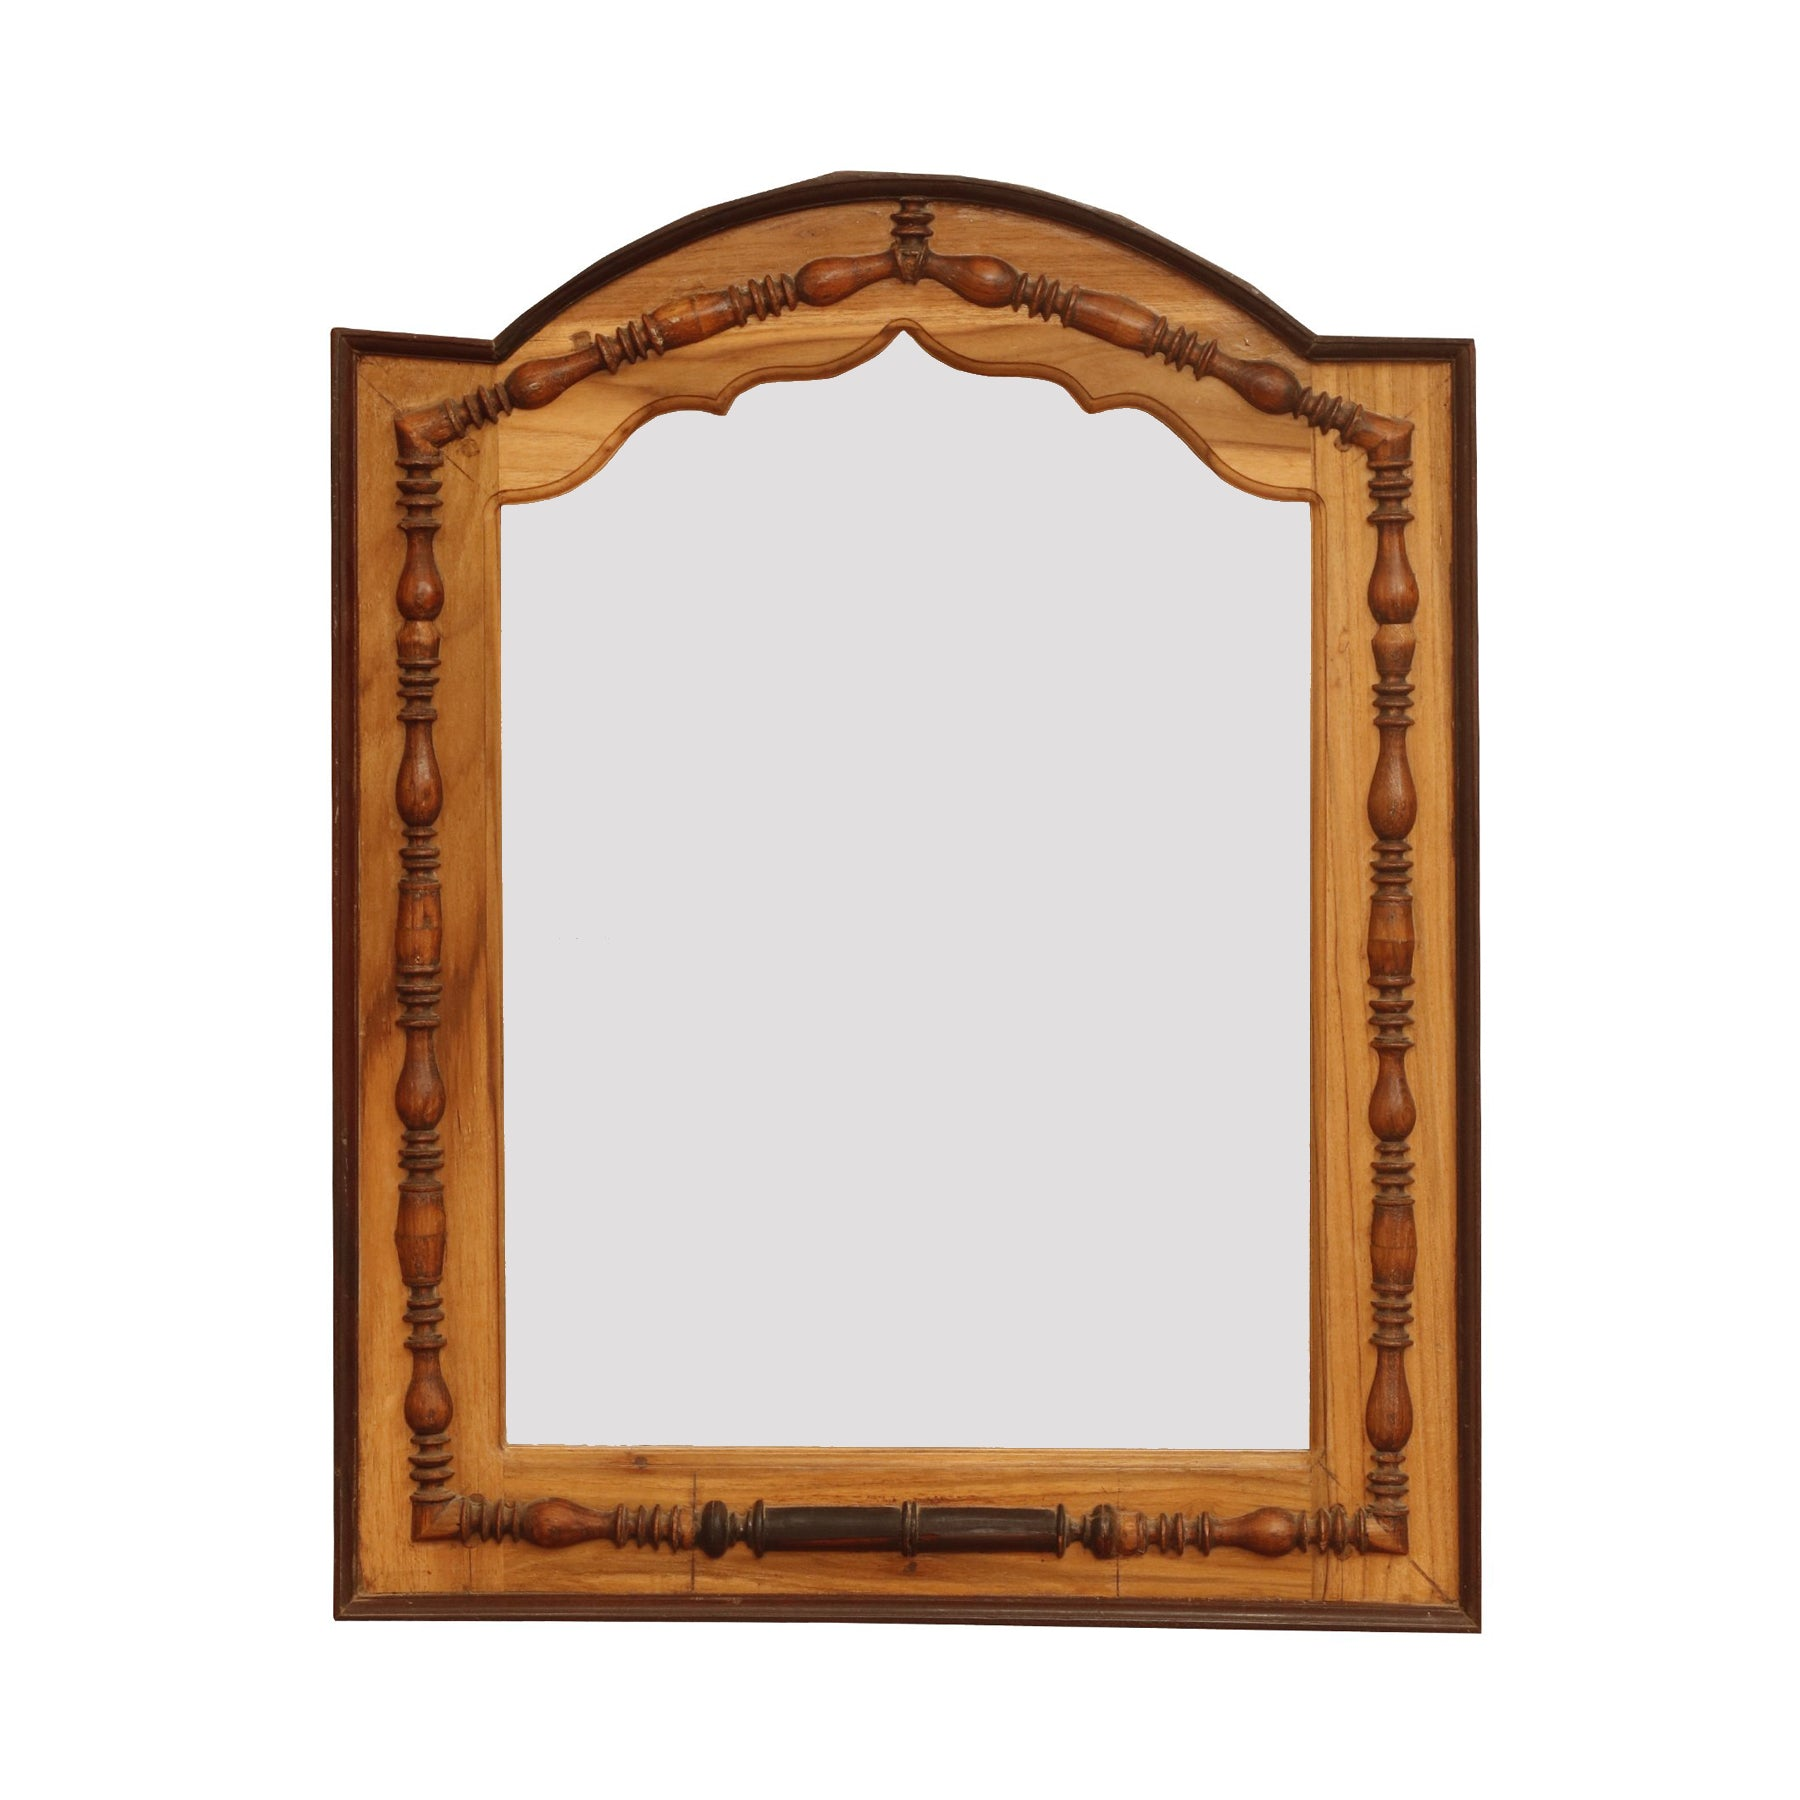 Sophisticated Jharokha Mirror Frame